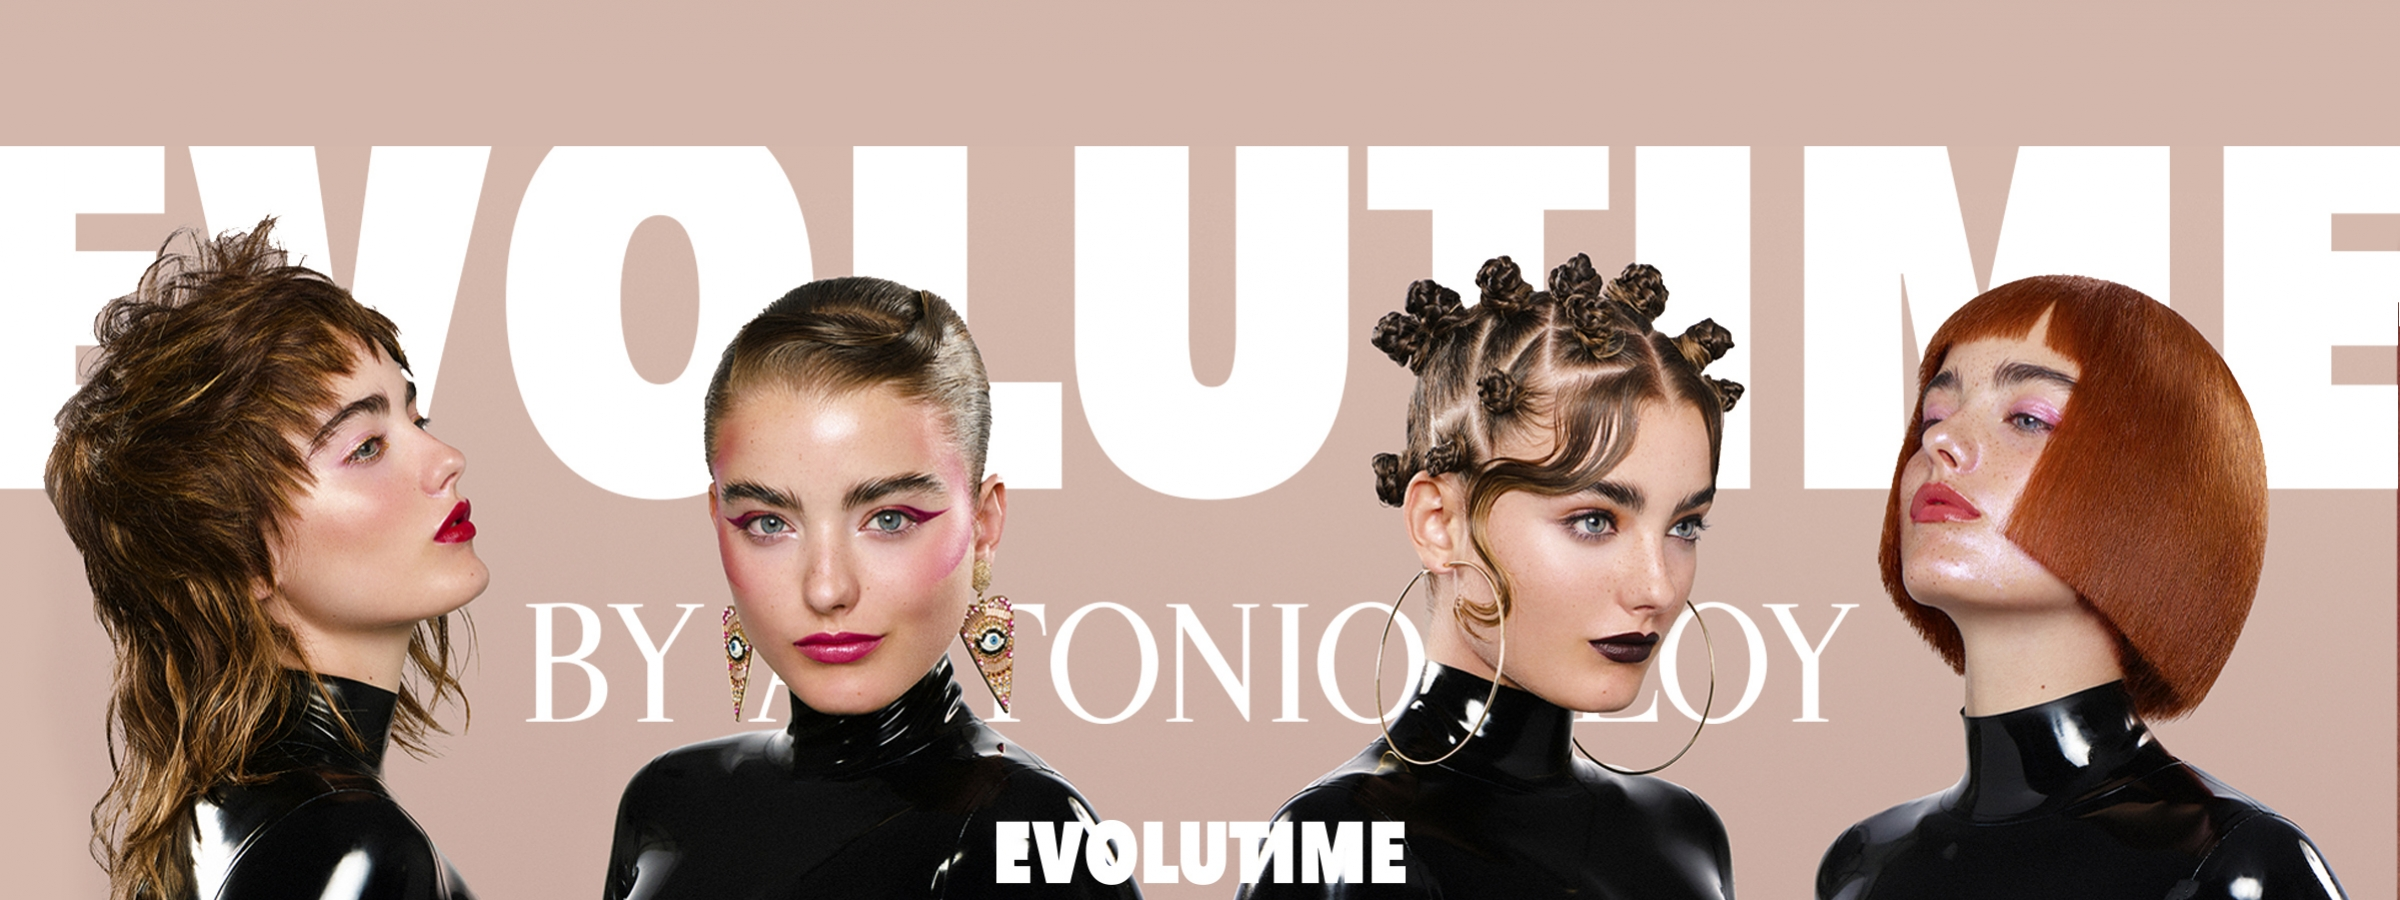 EVOLUTIME by Antonio Eloy